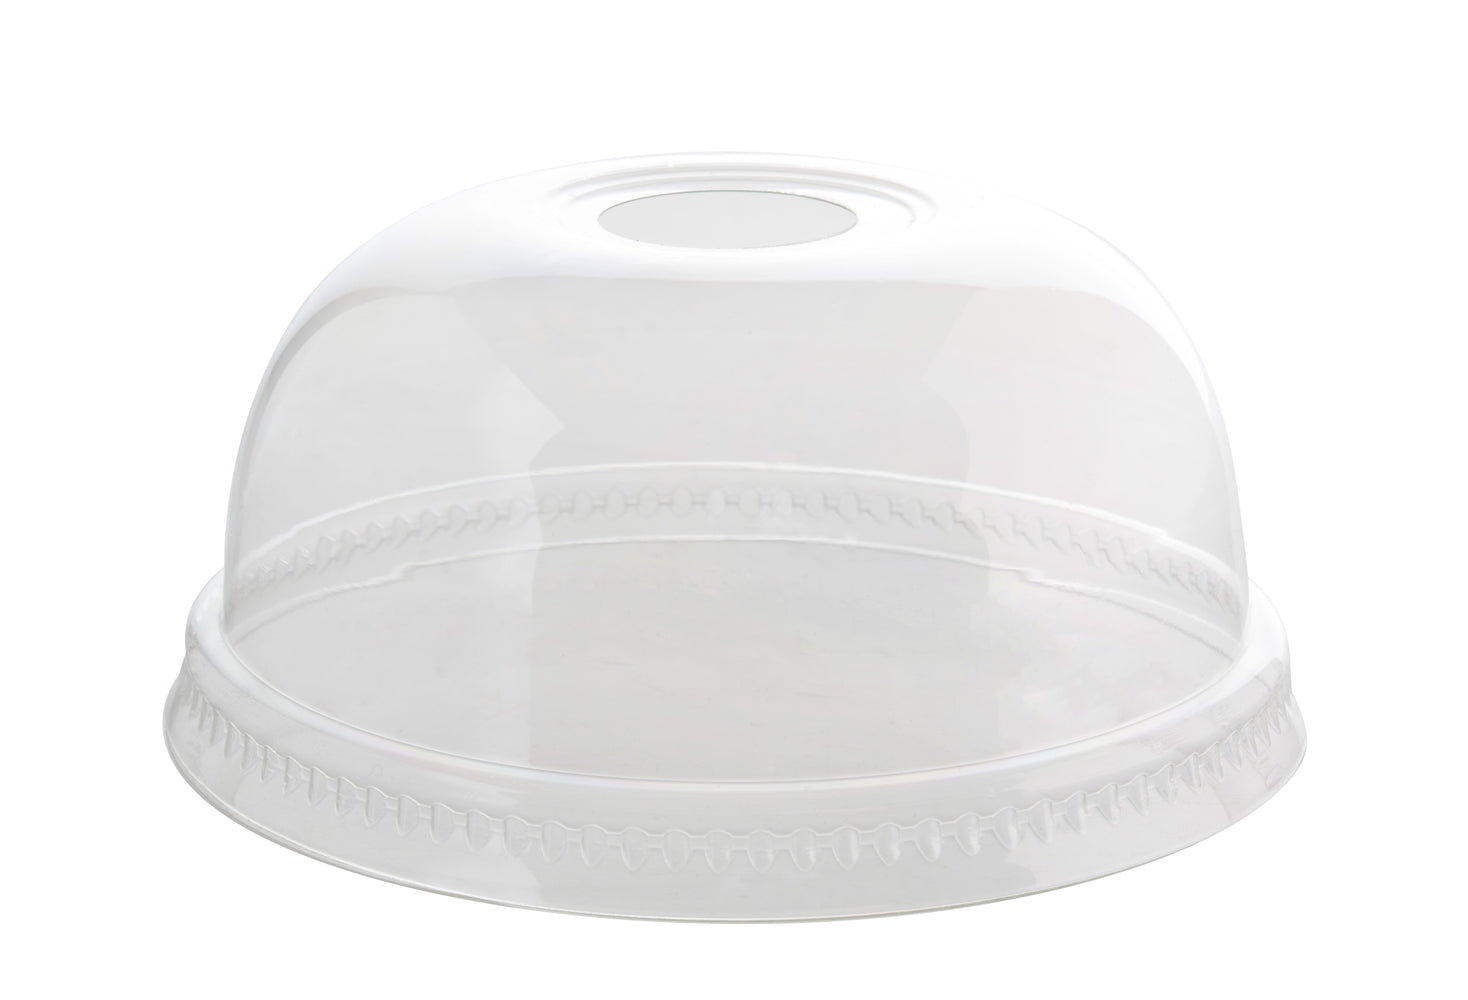 78MM PETE Dome Lid w/Hole (1000/CS) - Paper Supplies Plus